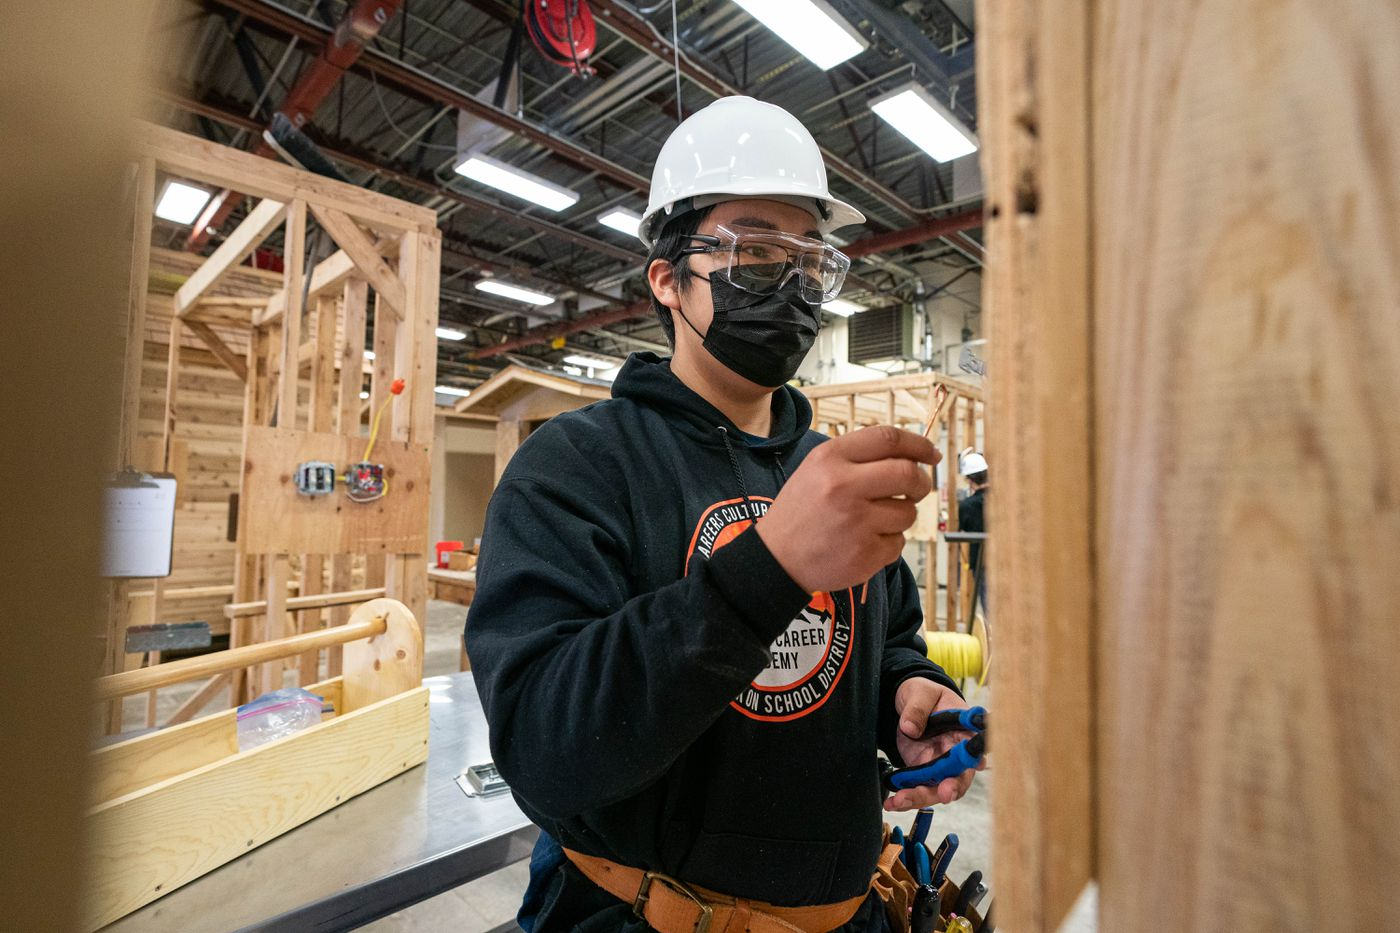 Kusilvak Career Academy student Jaye Chandler works on a wiring assignment at King Tech High School on April 2, 2021. Chandler is from Scammon Bay. (Loren Holmes / ADN)